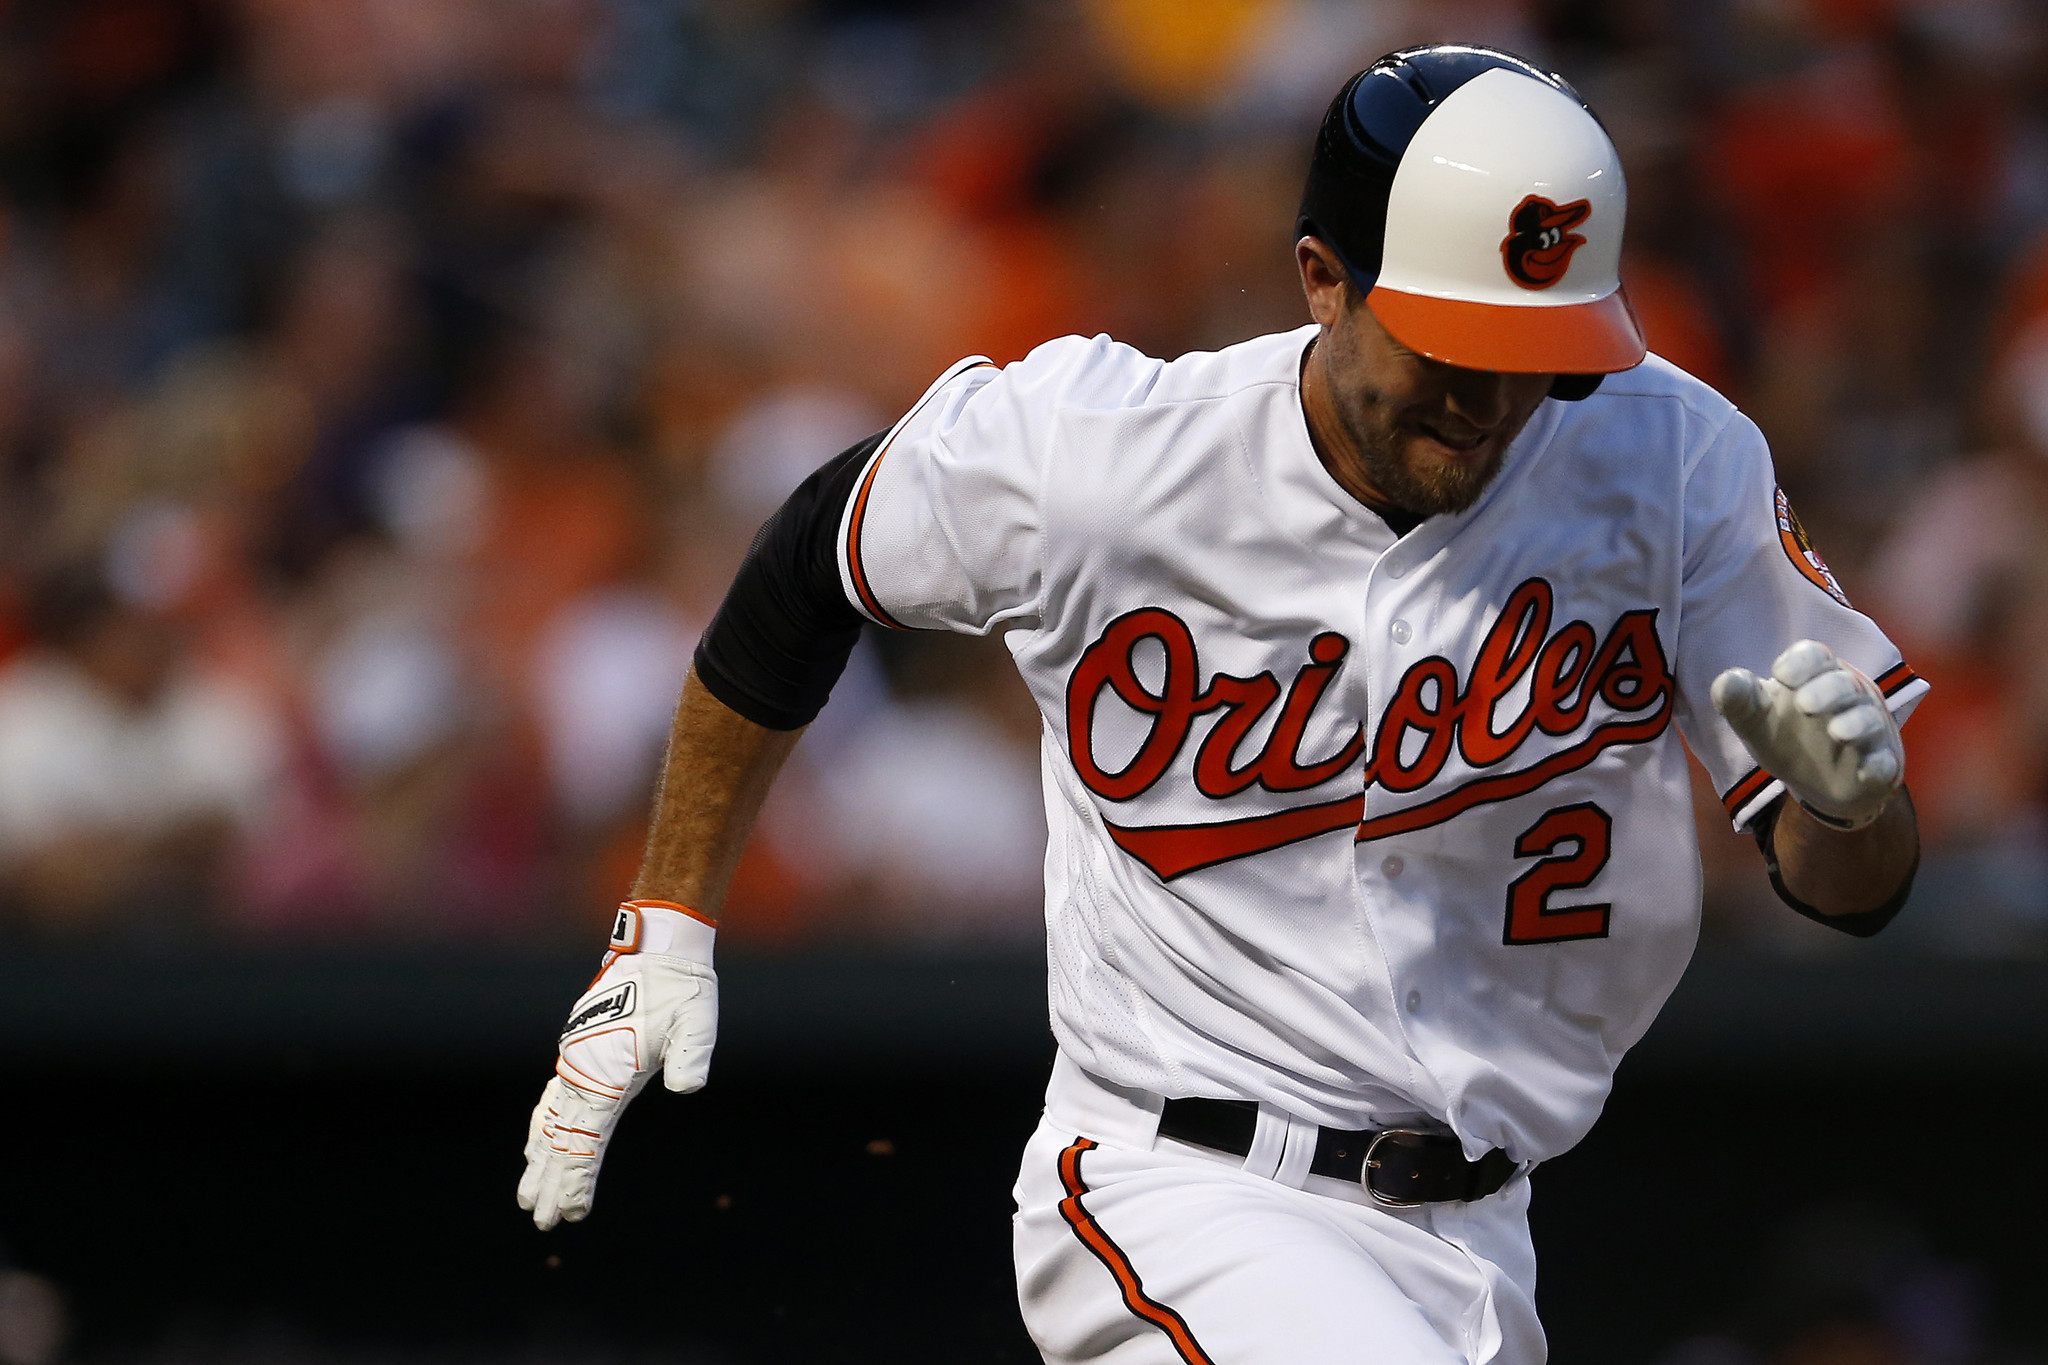 Bal-orioles-on-deck-what-to-watch-wednesday-vs-rockies-20160727